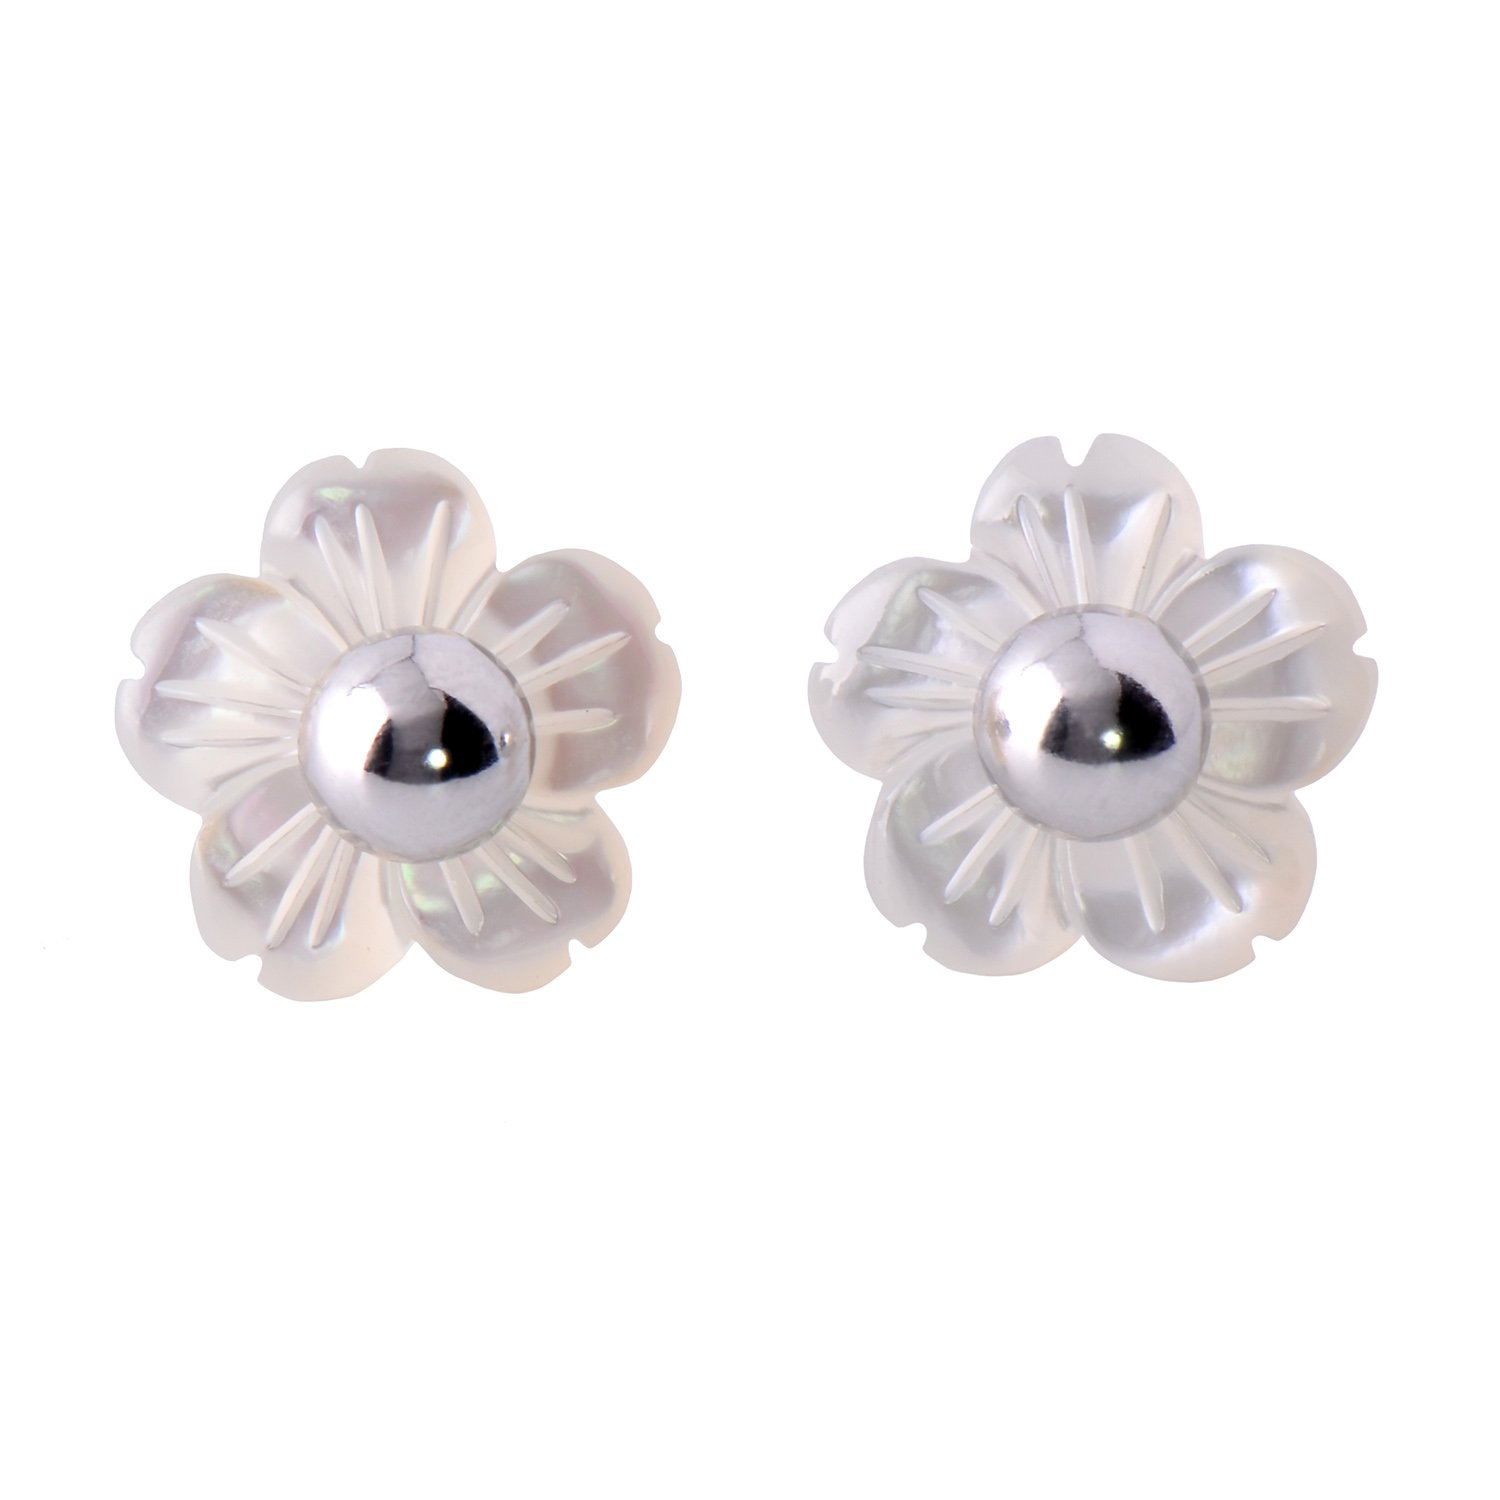 Paialco Mother of Pearl Flower Shape Earring Jackets Ball Silver Tone 6MM by Paialco